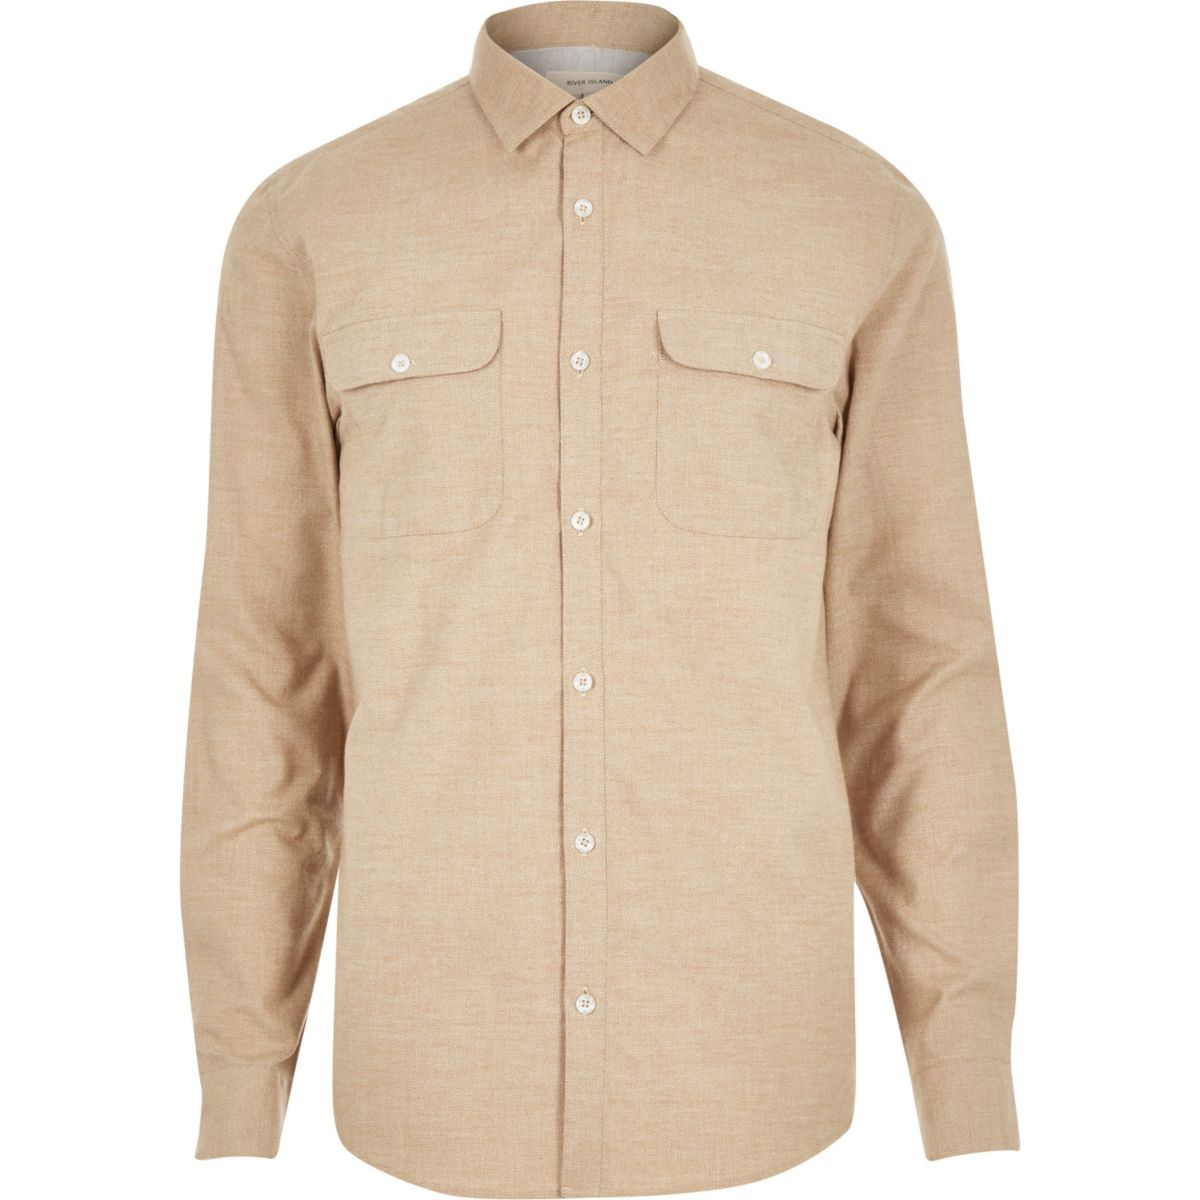 Dark beige brushed flannel two pocket shirt - Shirts - Sale - men